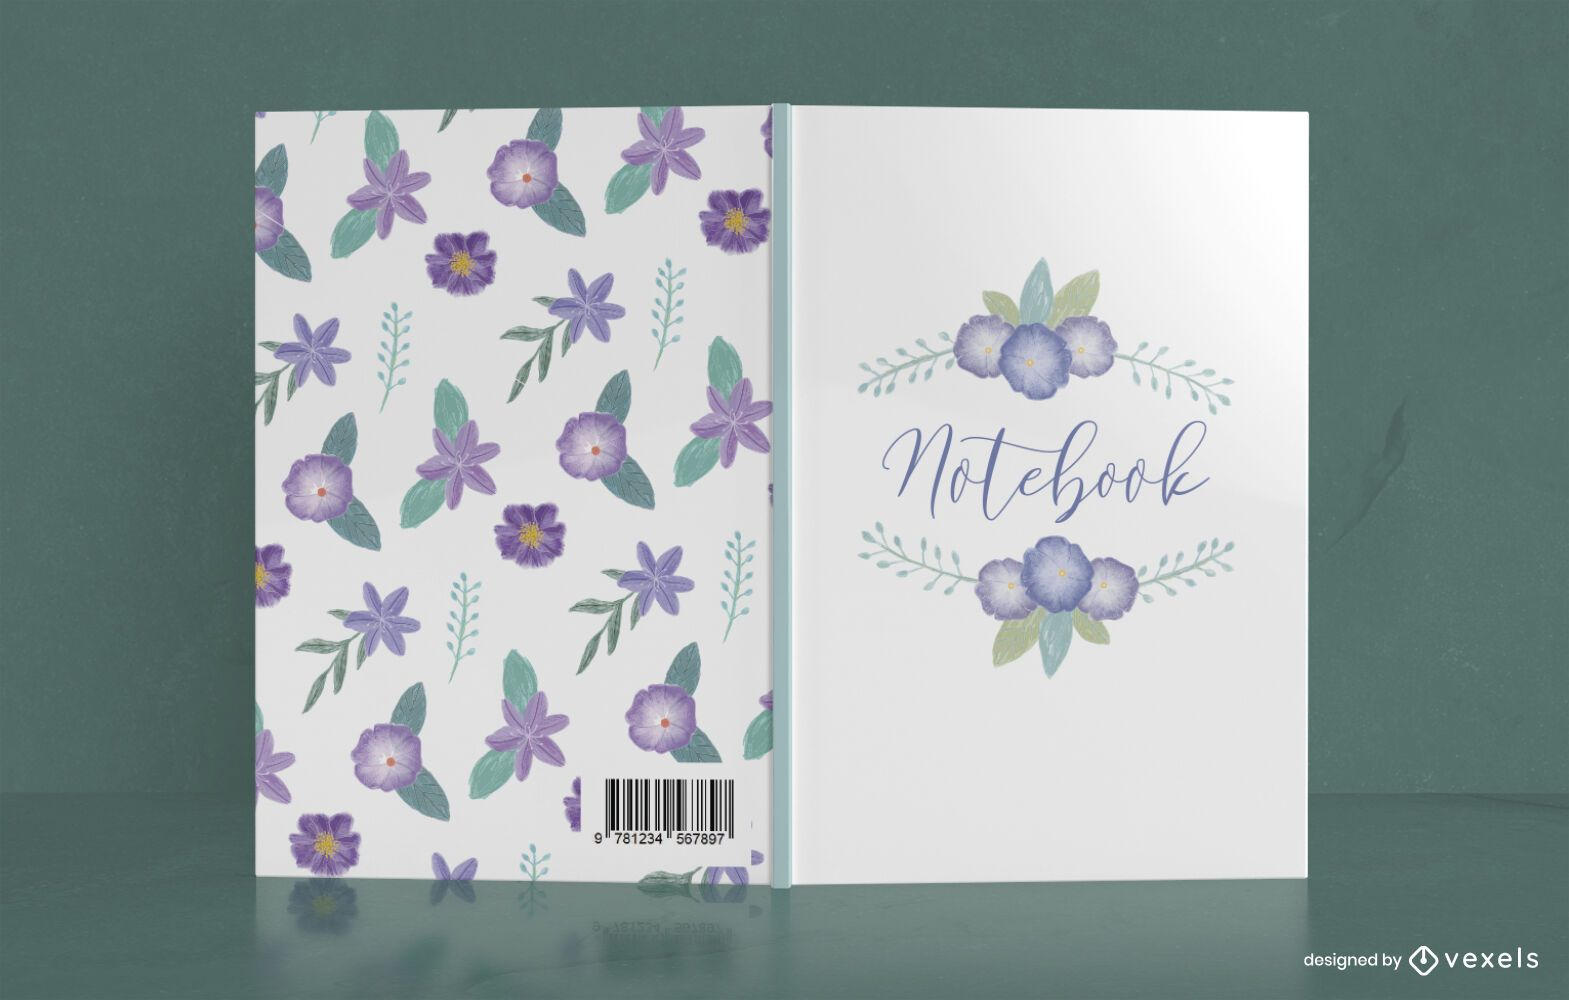 Lilac Floral Notebook Cover Design